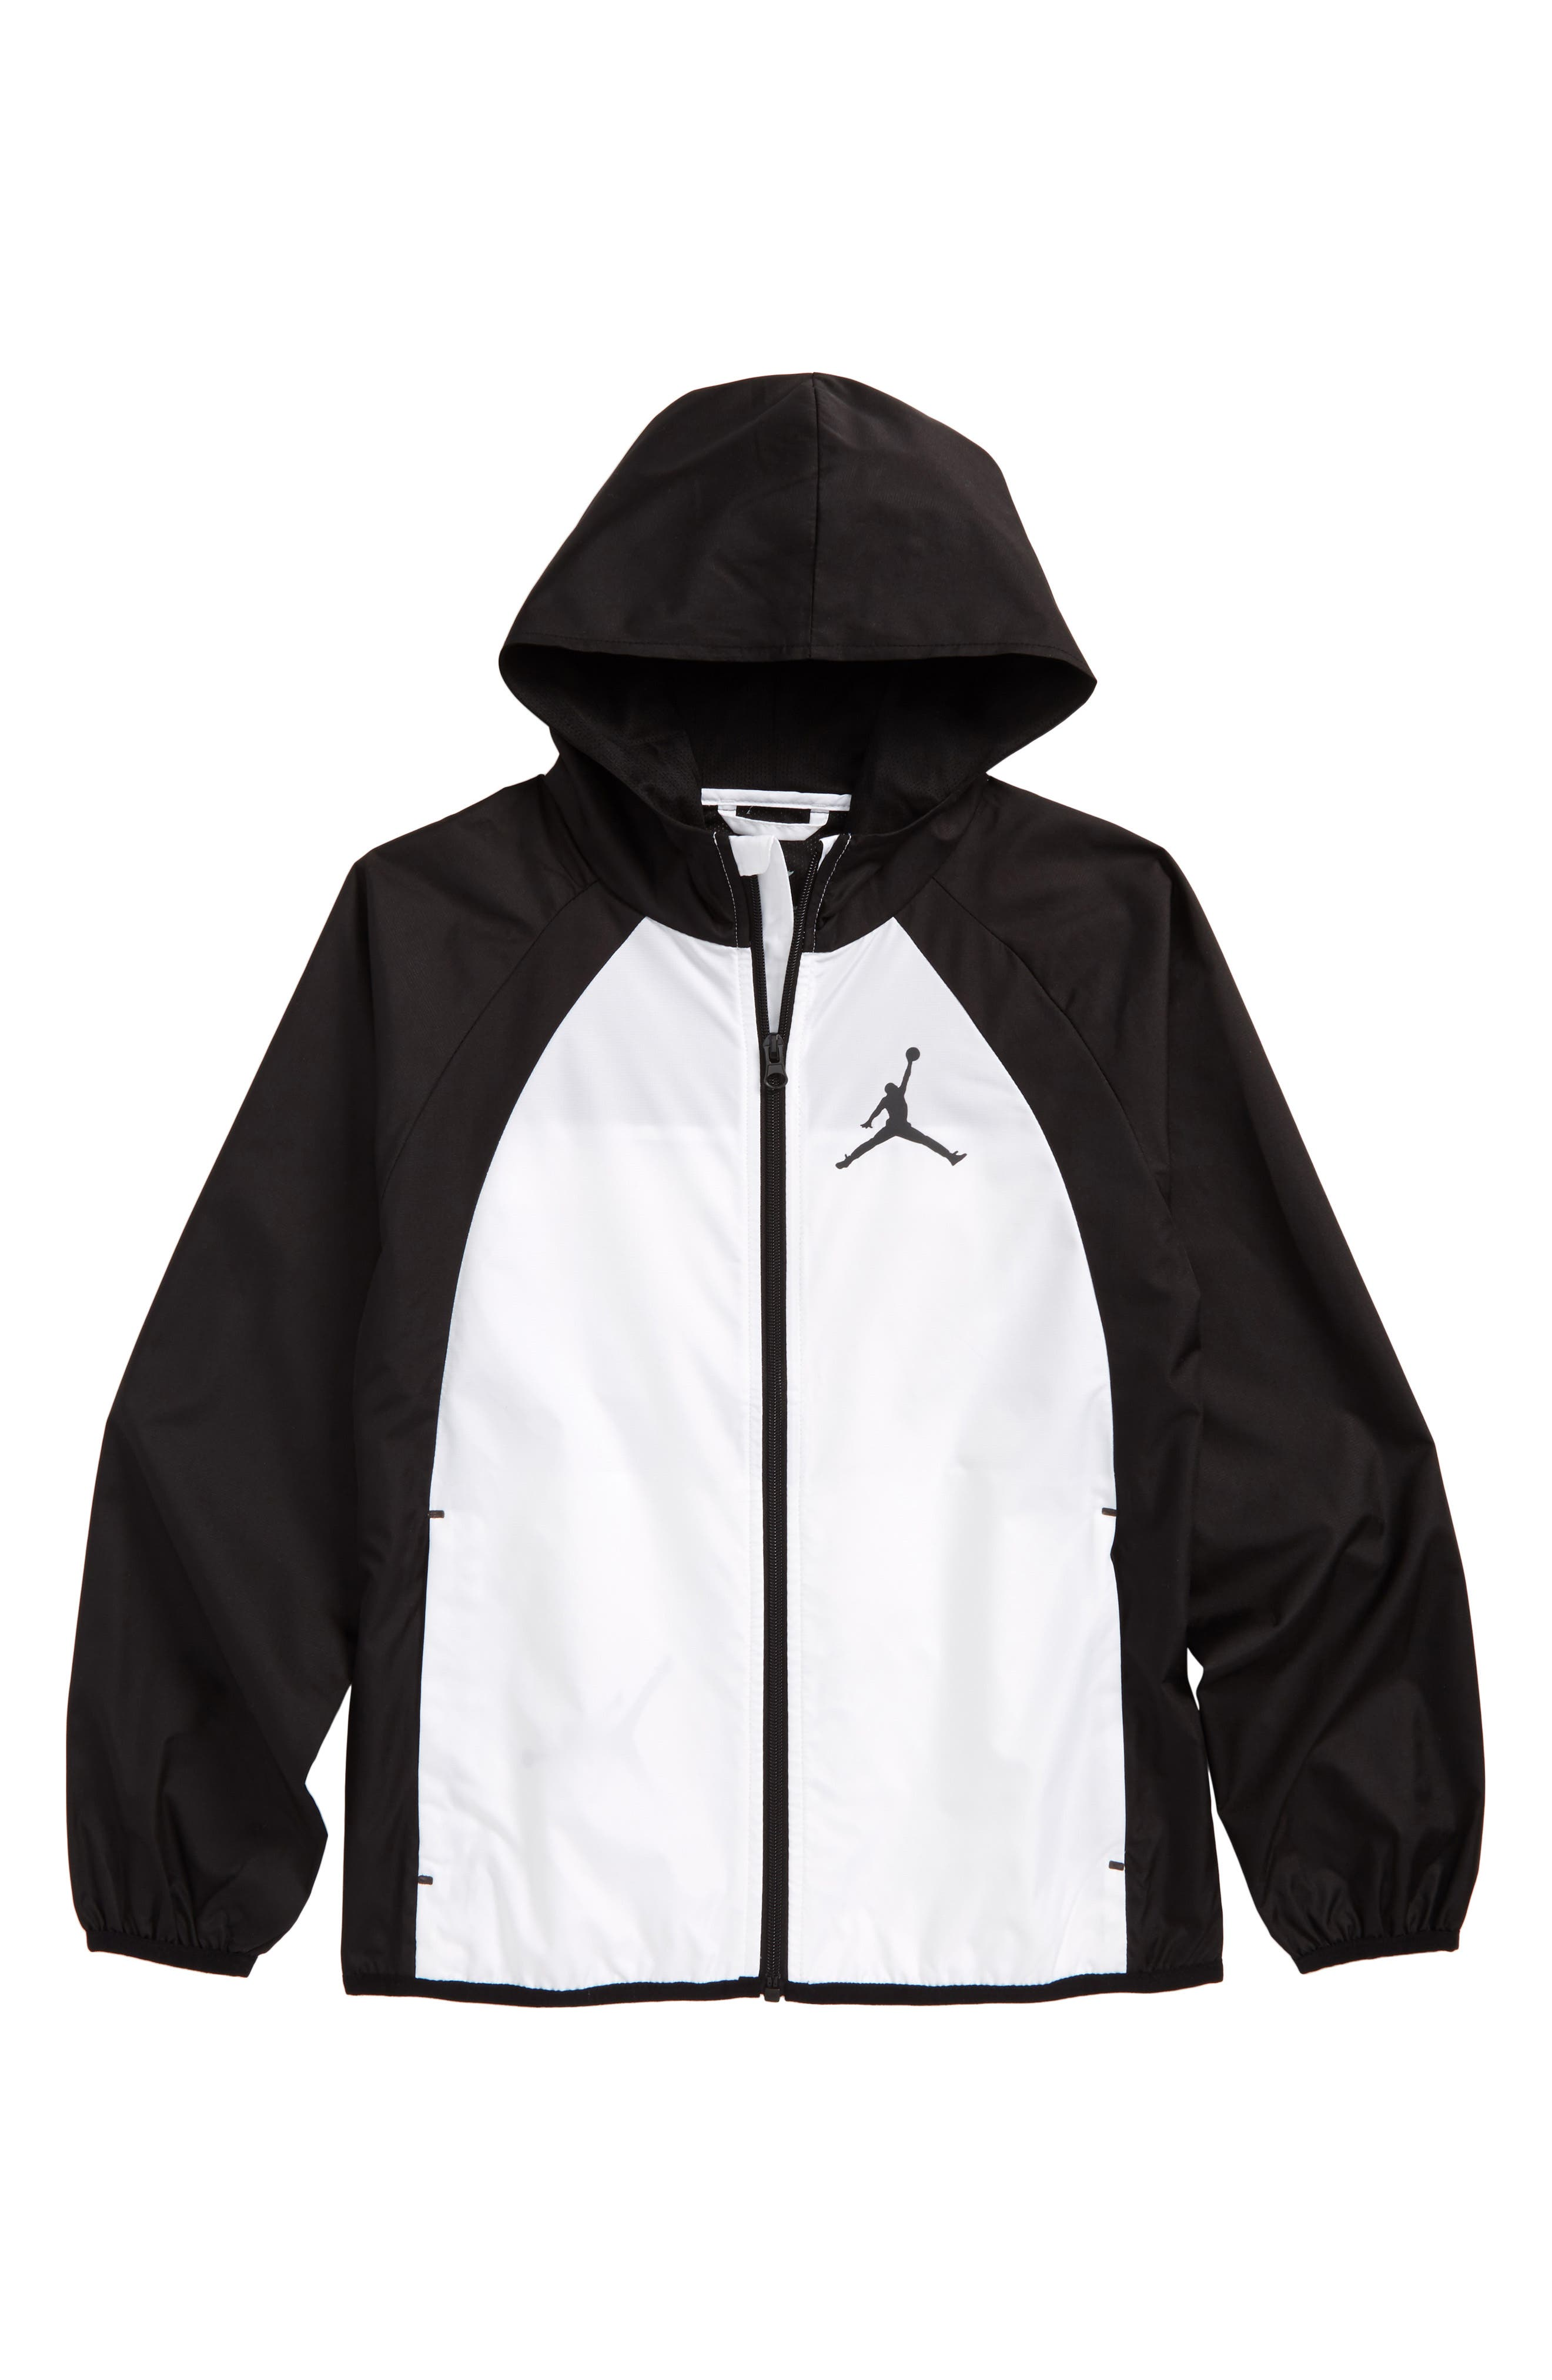 Jordan Packable Zip Hoodie Wingsbreaker,                             Main thumbnail 1, color,                             001